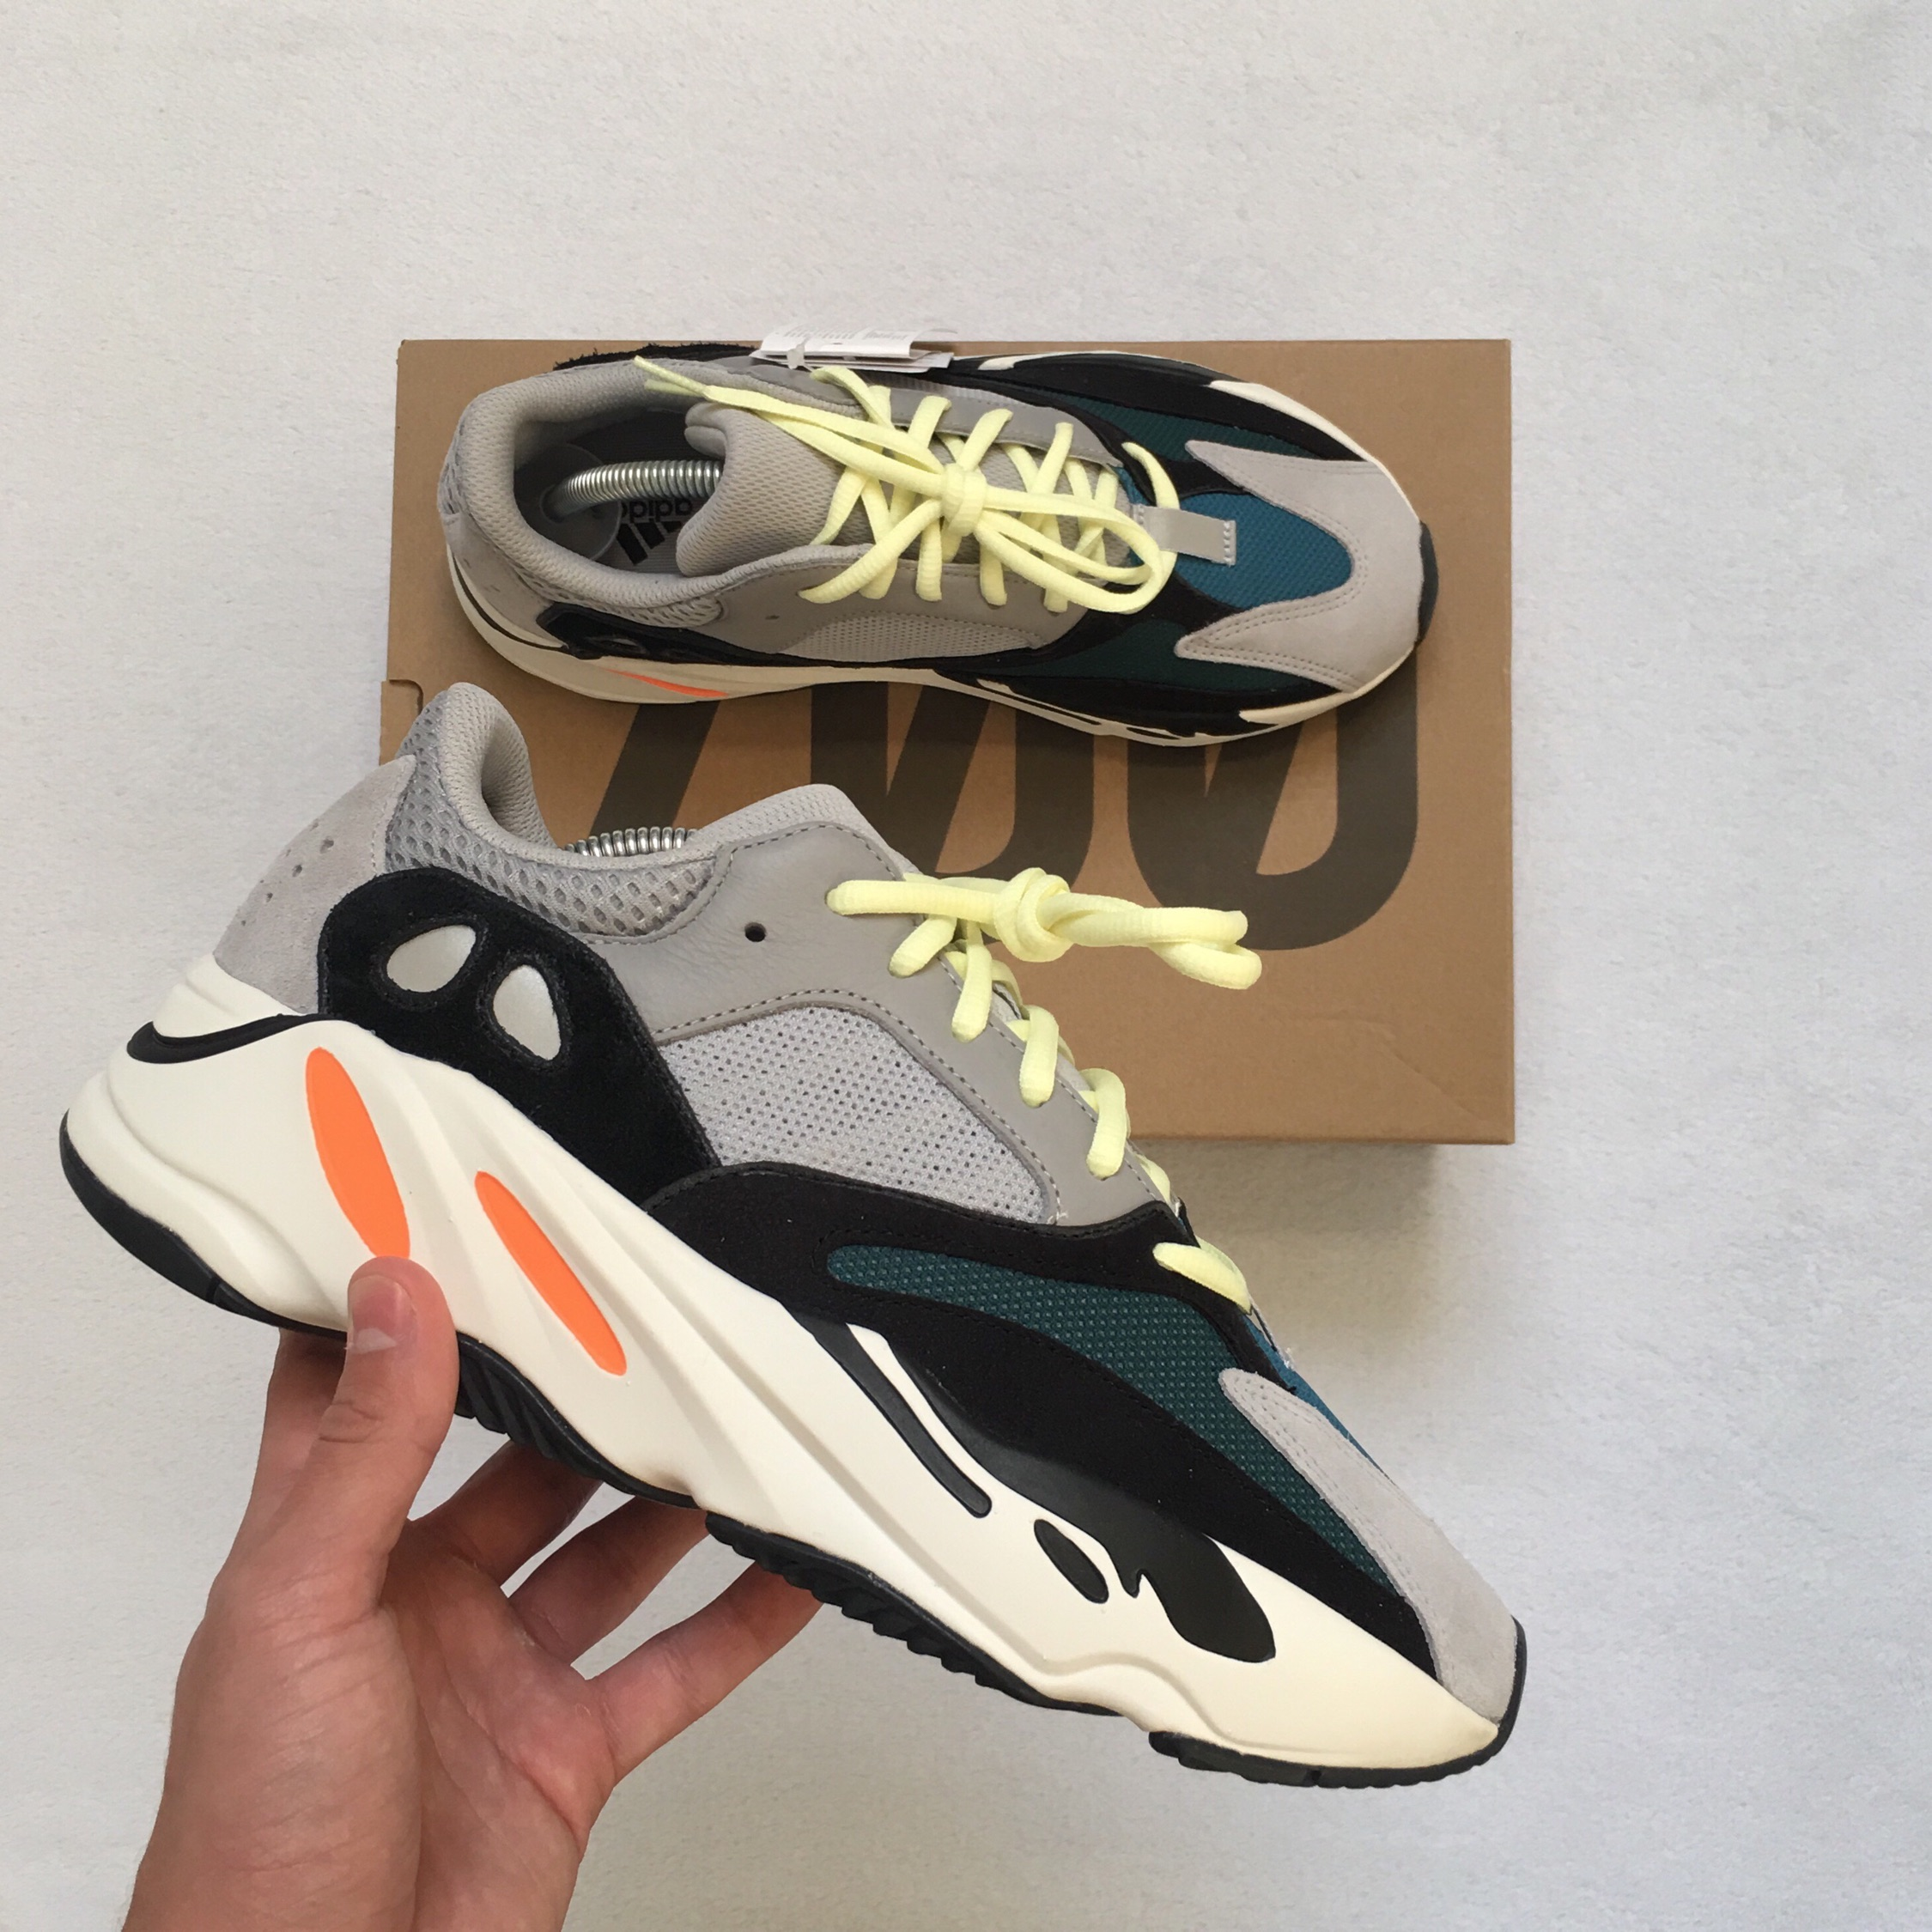 uk availability 6eac8 443c6 Adidas Yeezy Boost 700 Wave Runner Og